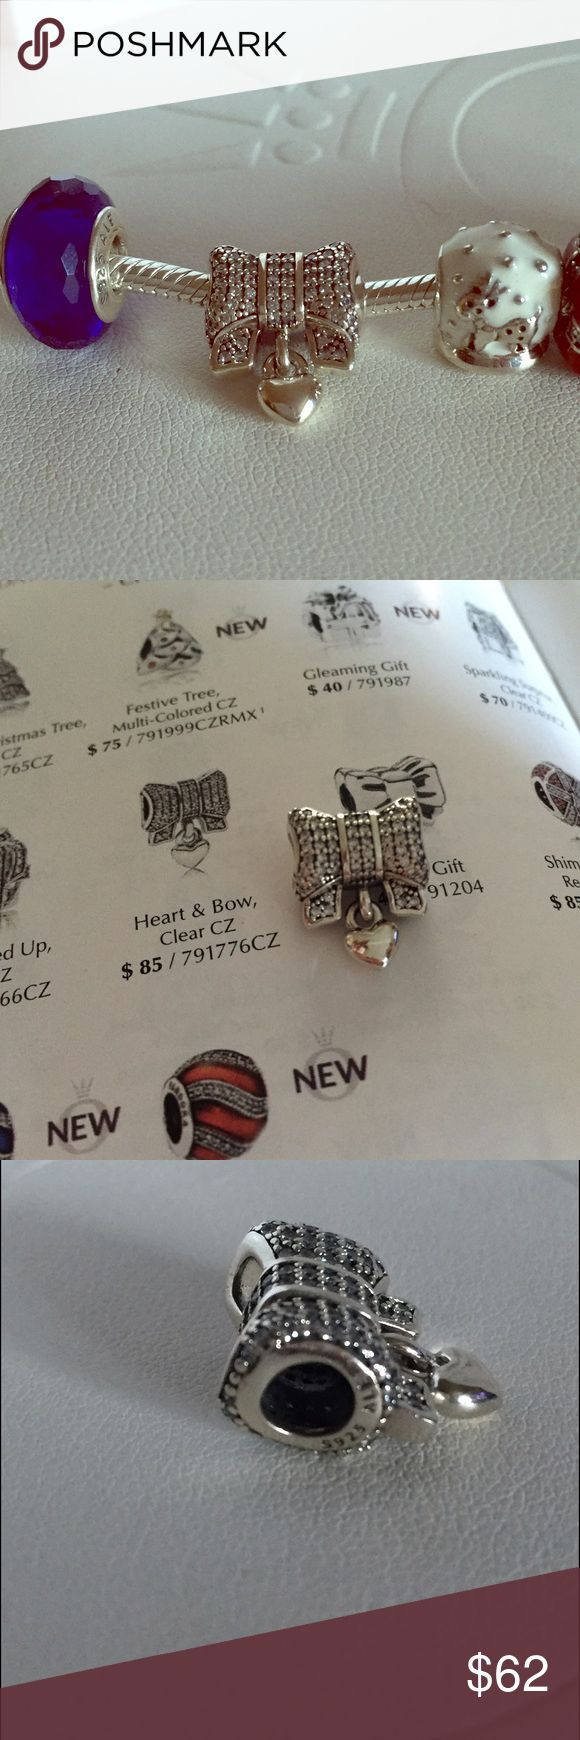 places that sell pandora charms pandora jewellery store